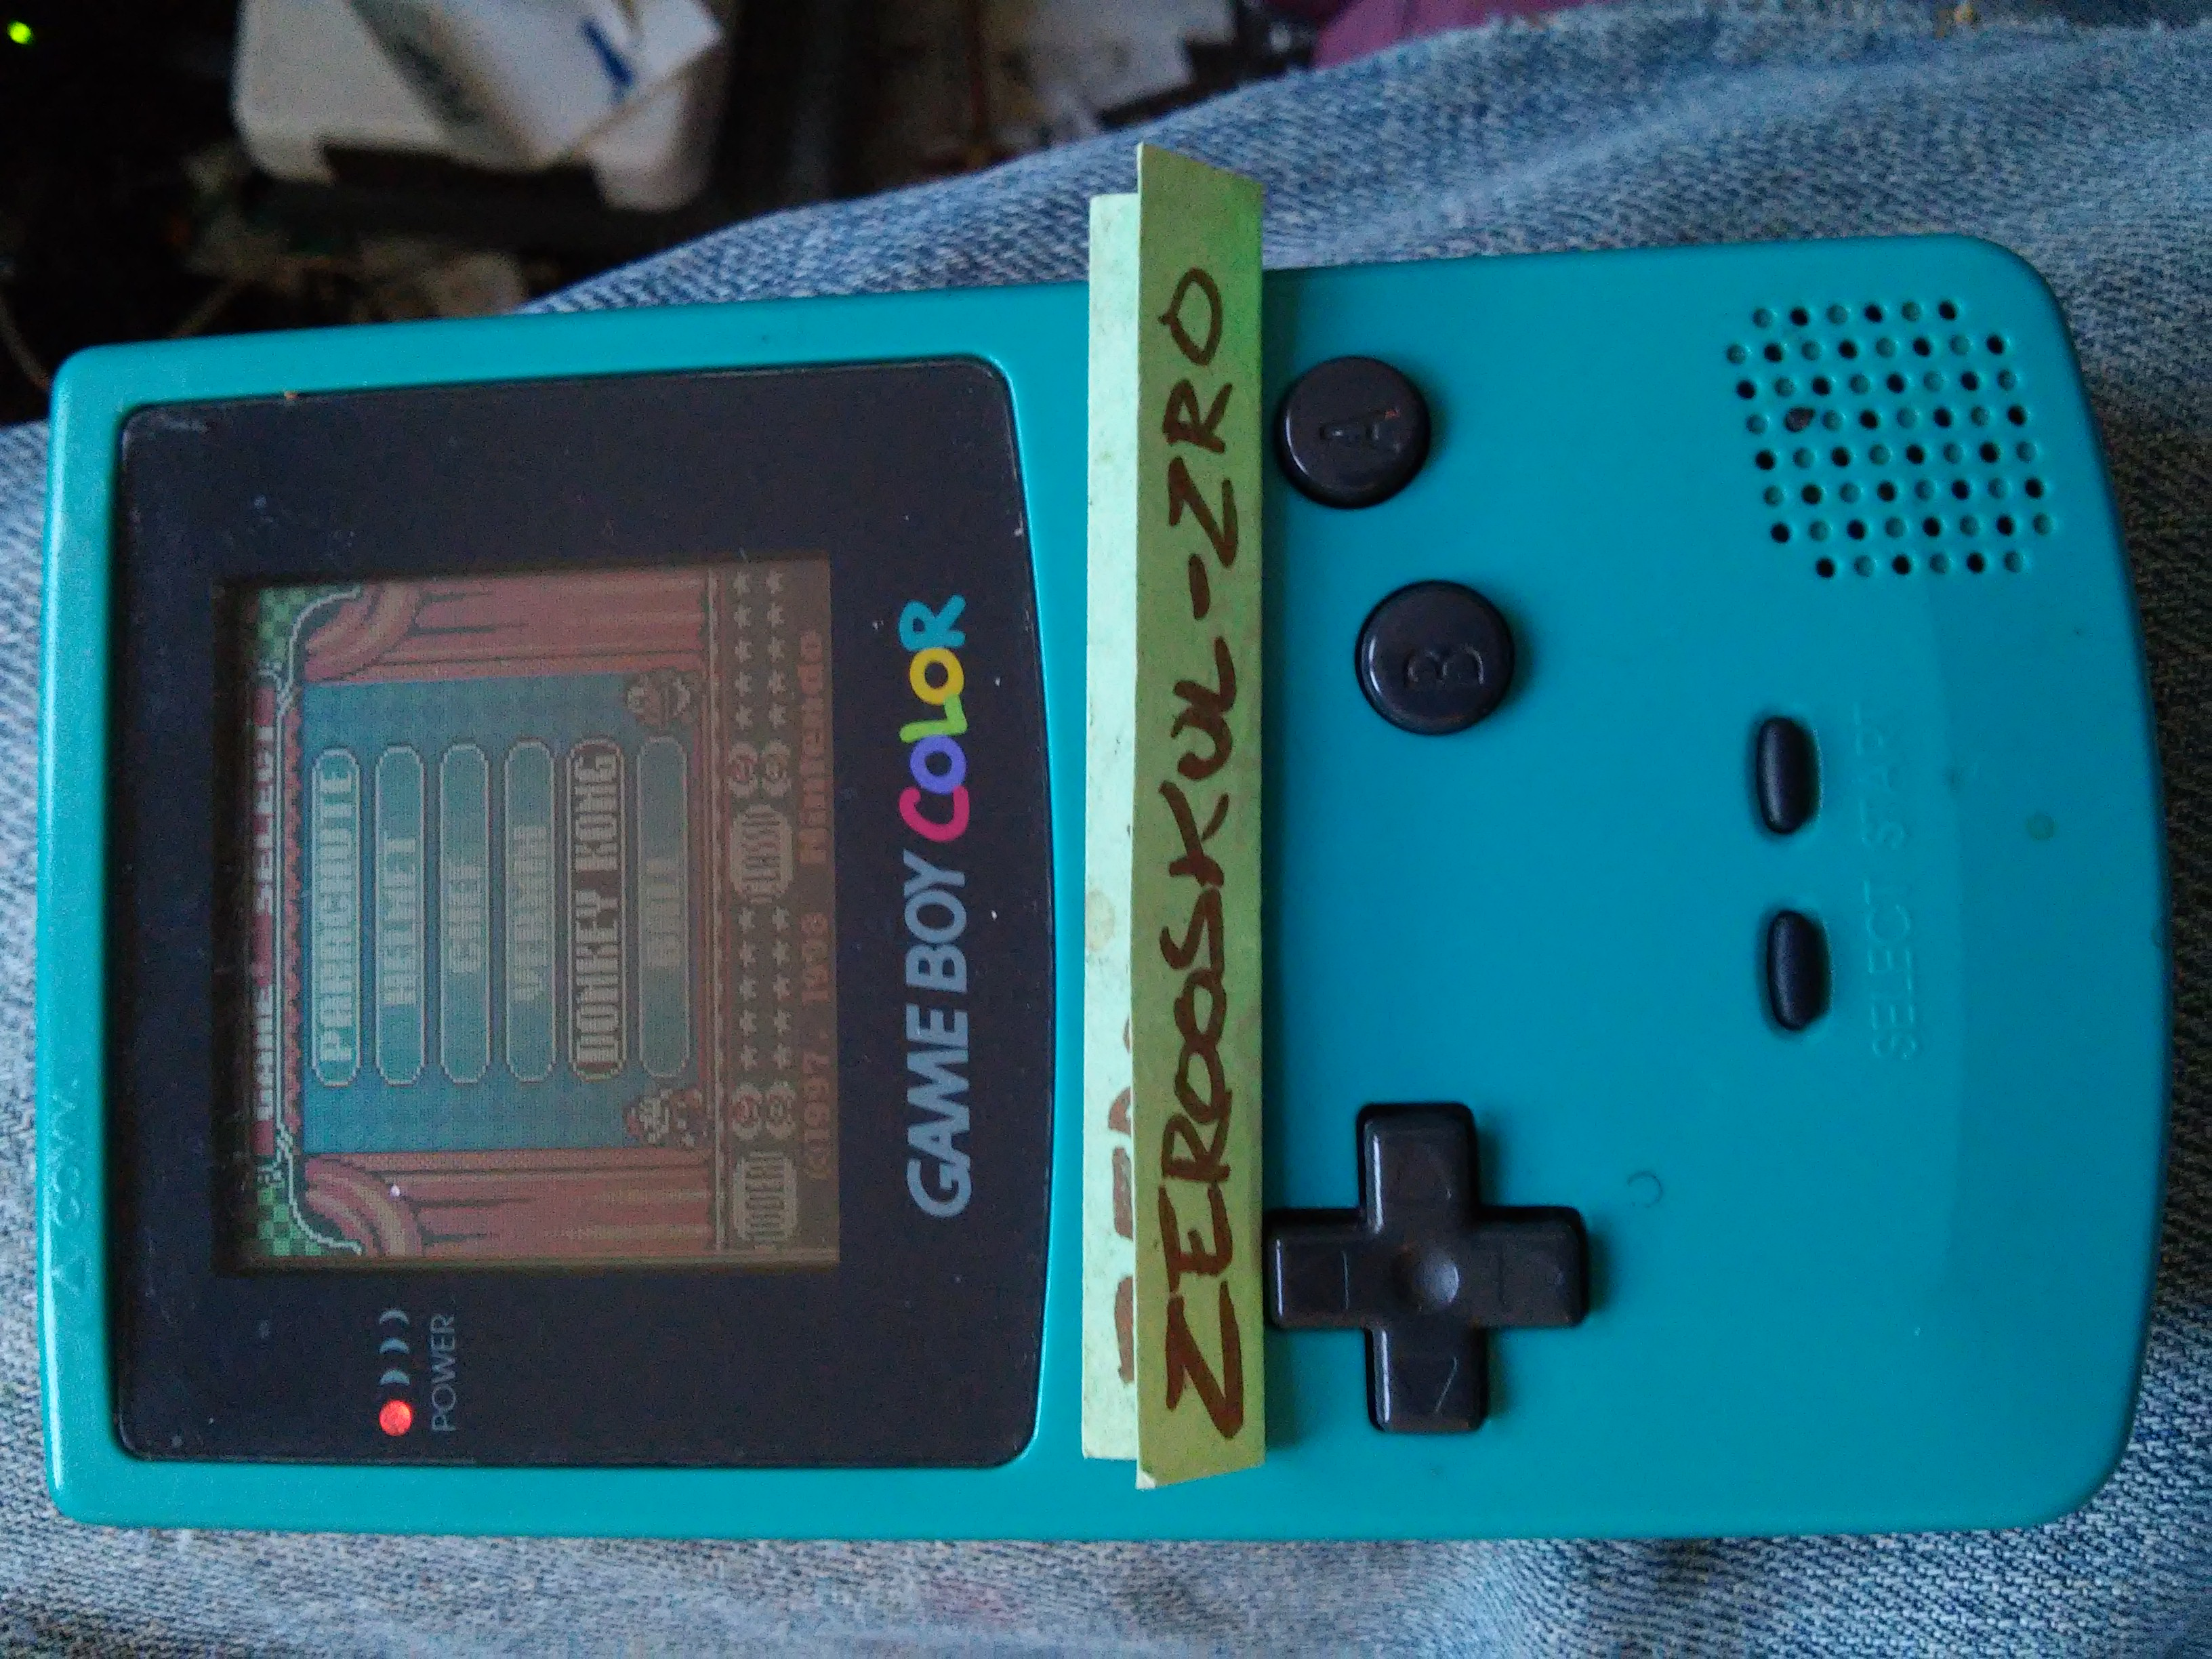 zerooskul: Game & Watch Gallery 2: Donkey Kong [Modern: Very Hard] (Game Boy Color) 2,165 points on 2018-09-19 15:19:05